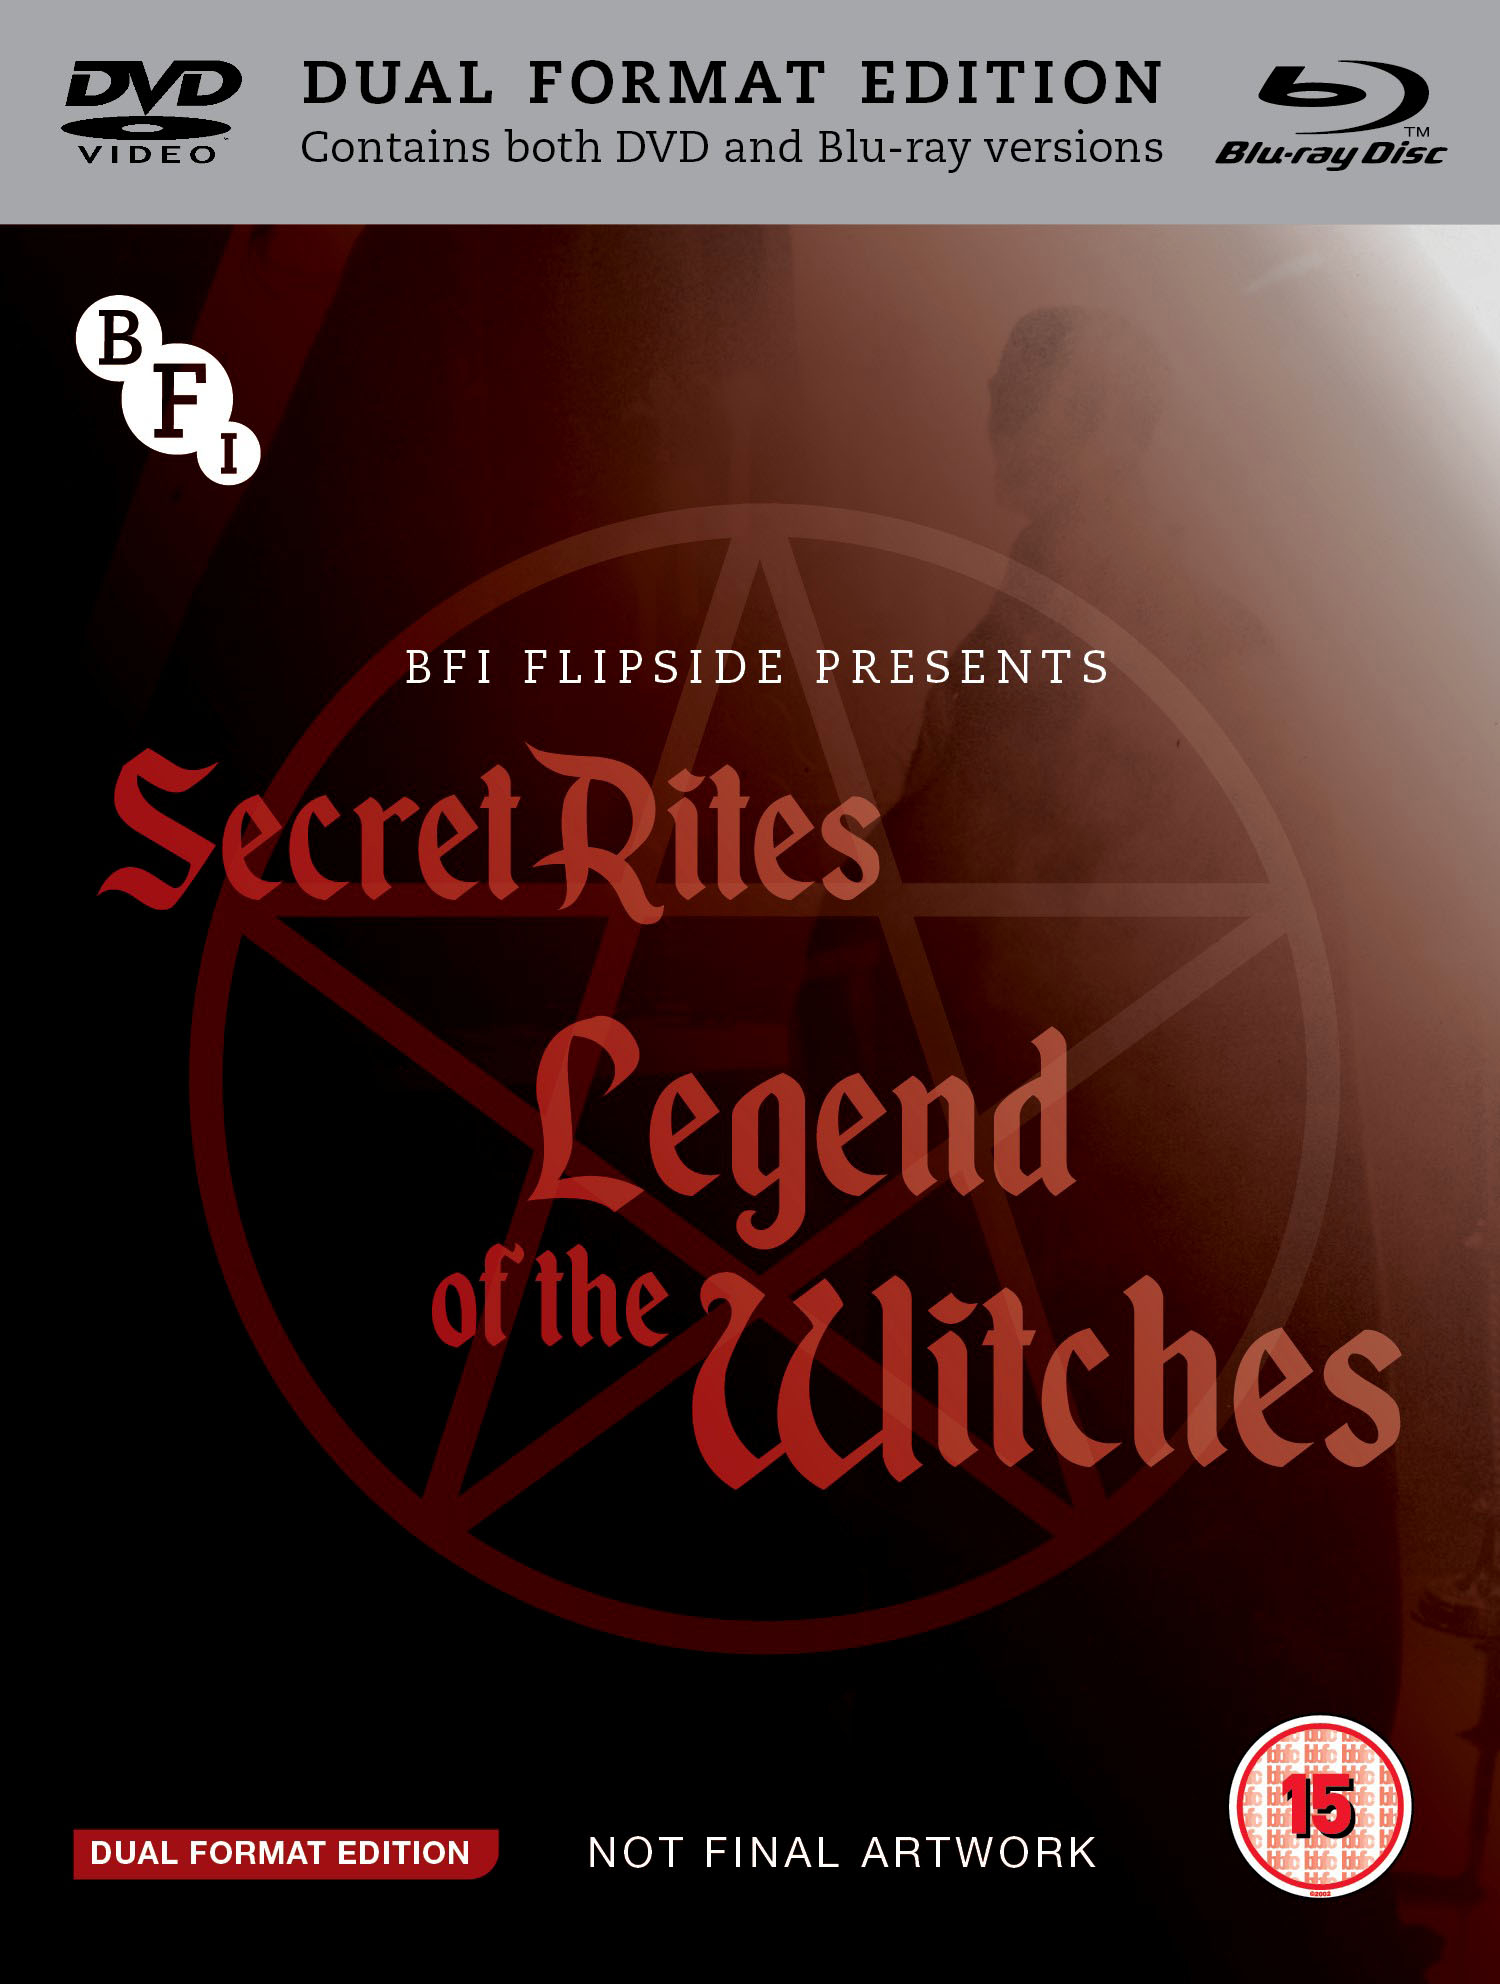 Buy PRE-ORDER Legend of the Witches & Secret Rites (Flipside 039) (Dual Format Edition)